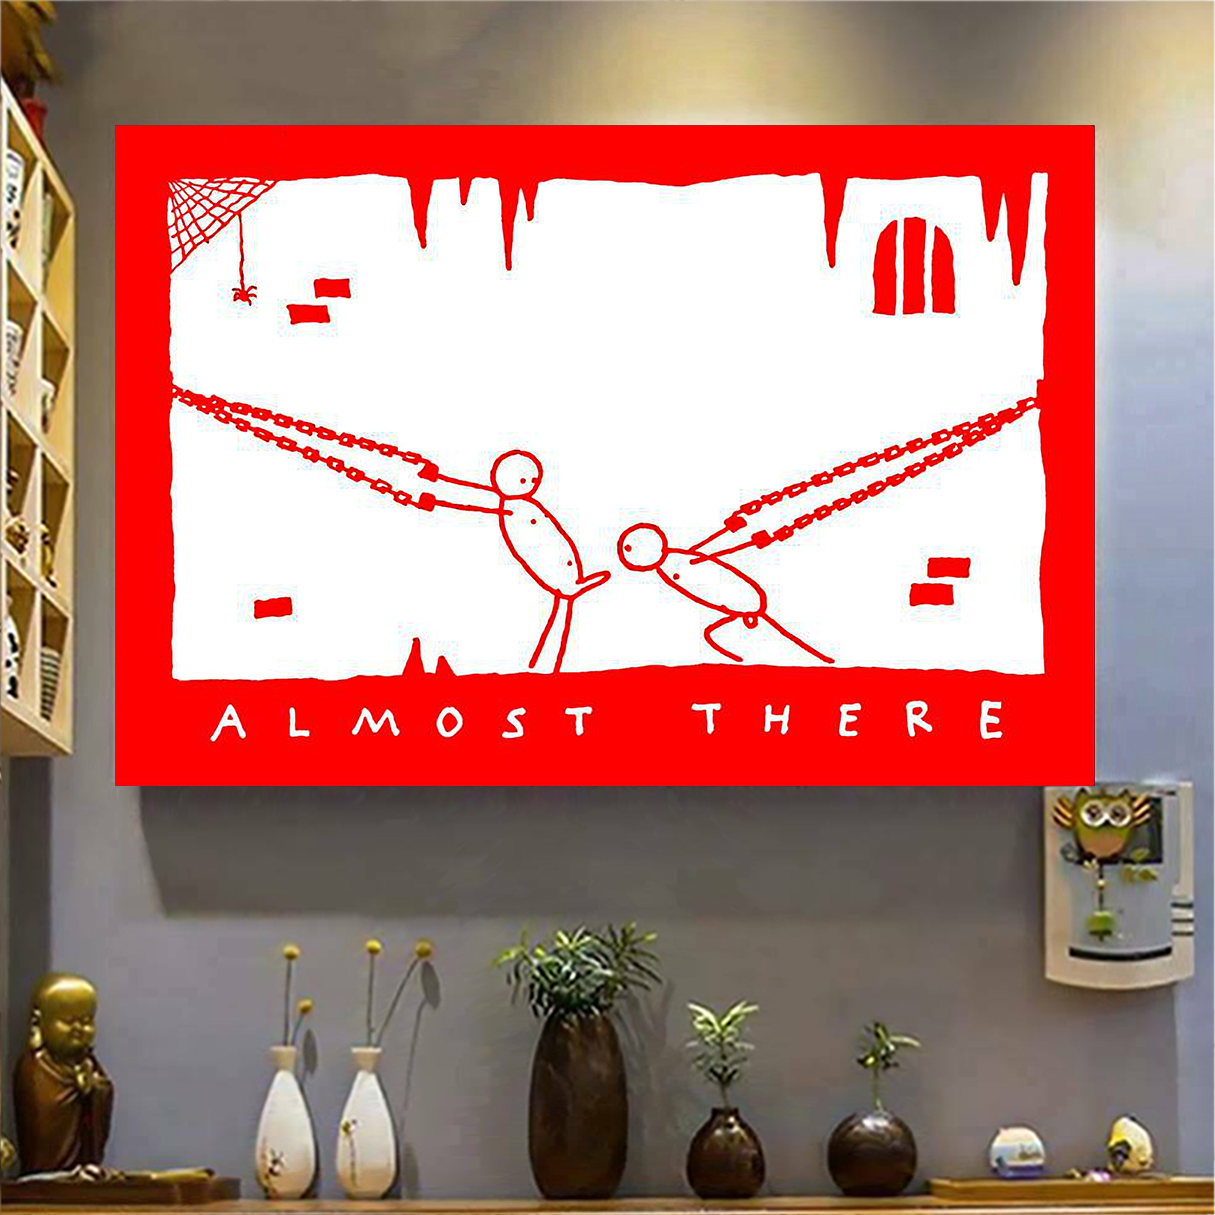 Almost there poster A2